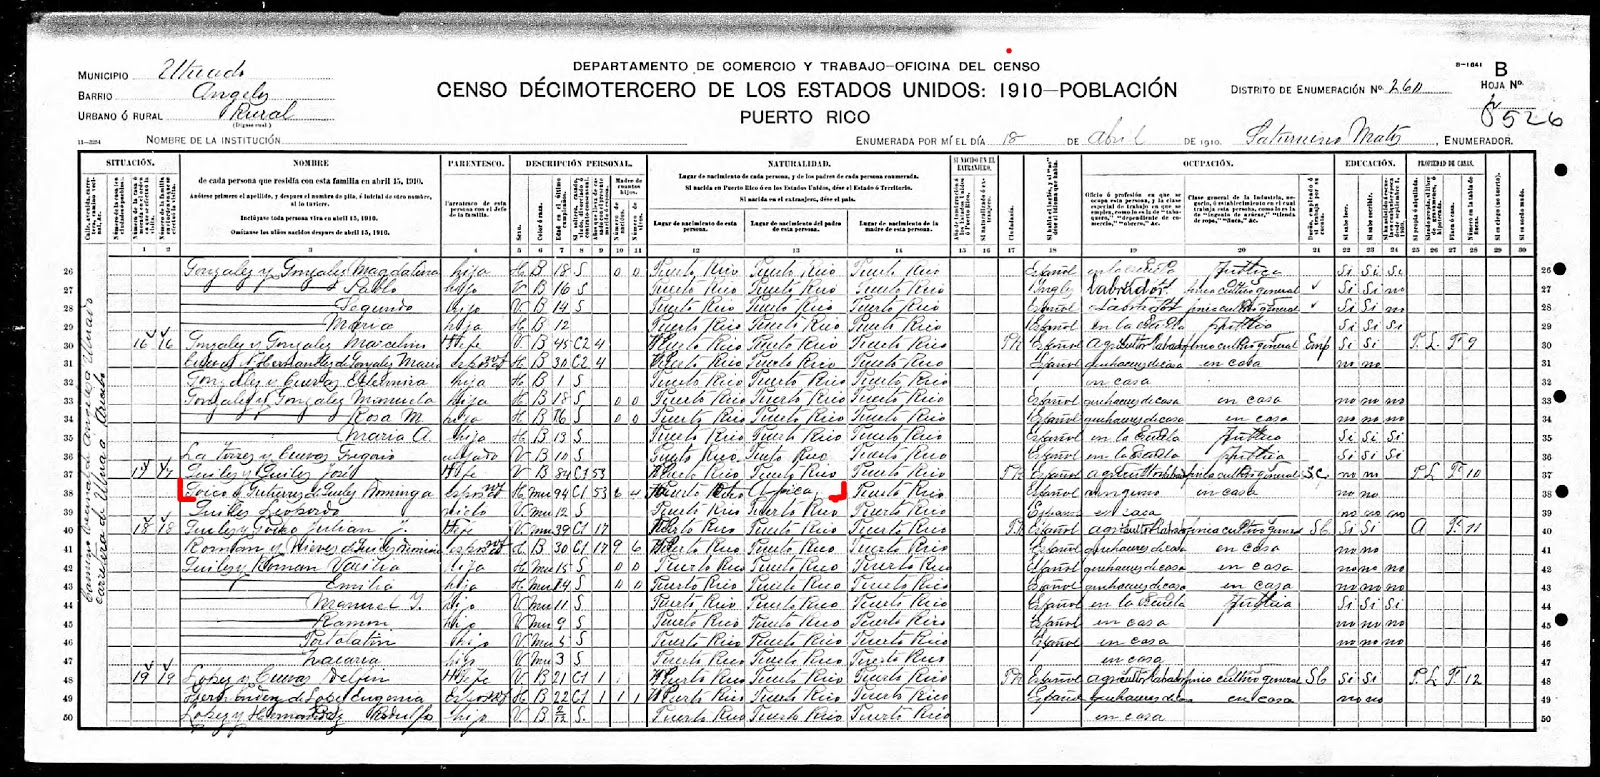 Quiles family history birth place puerto rico home in 1910angelesutuado race mulatto spousejose quiles y quiles 84 nietoleopordo quiles 12 fathers birth place africa aiddatafo Gallery